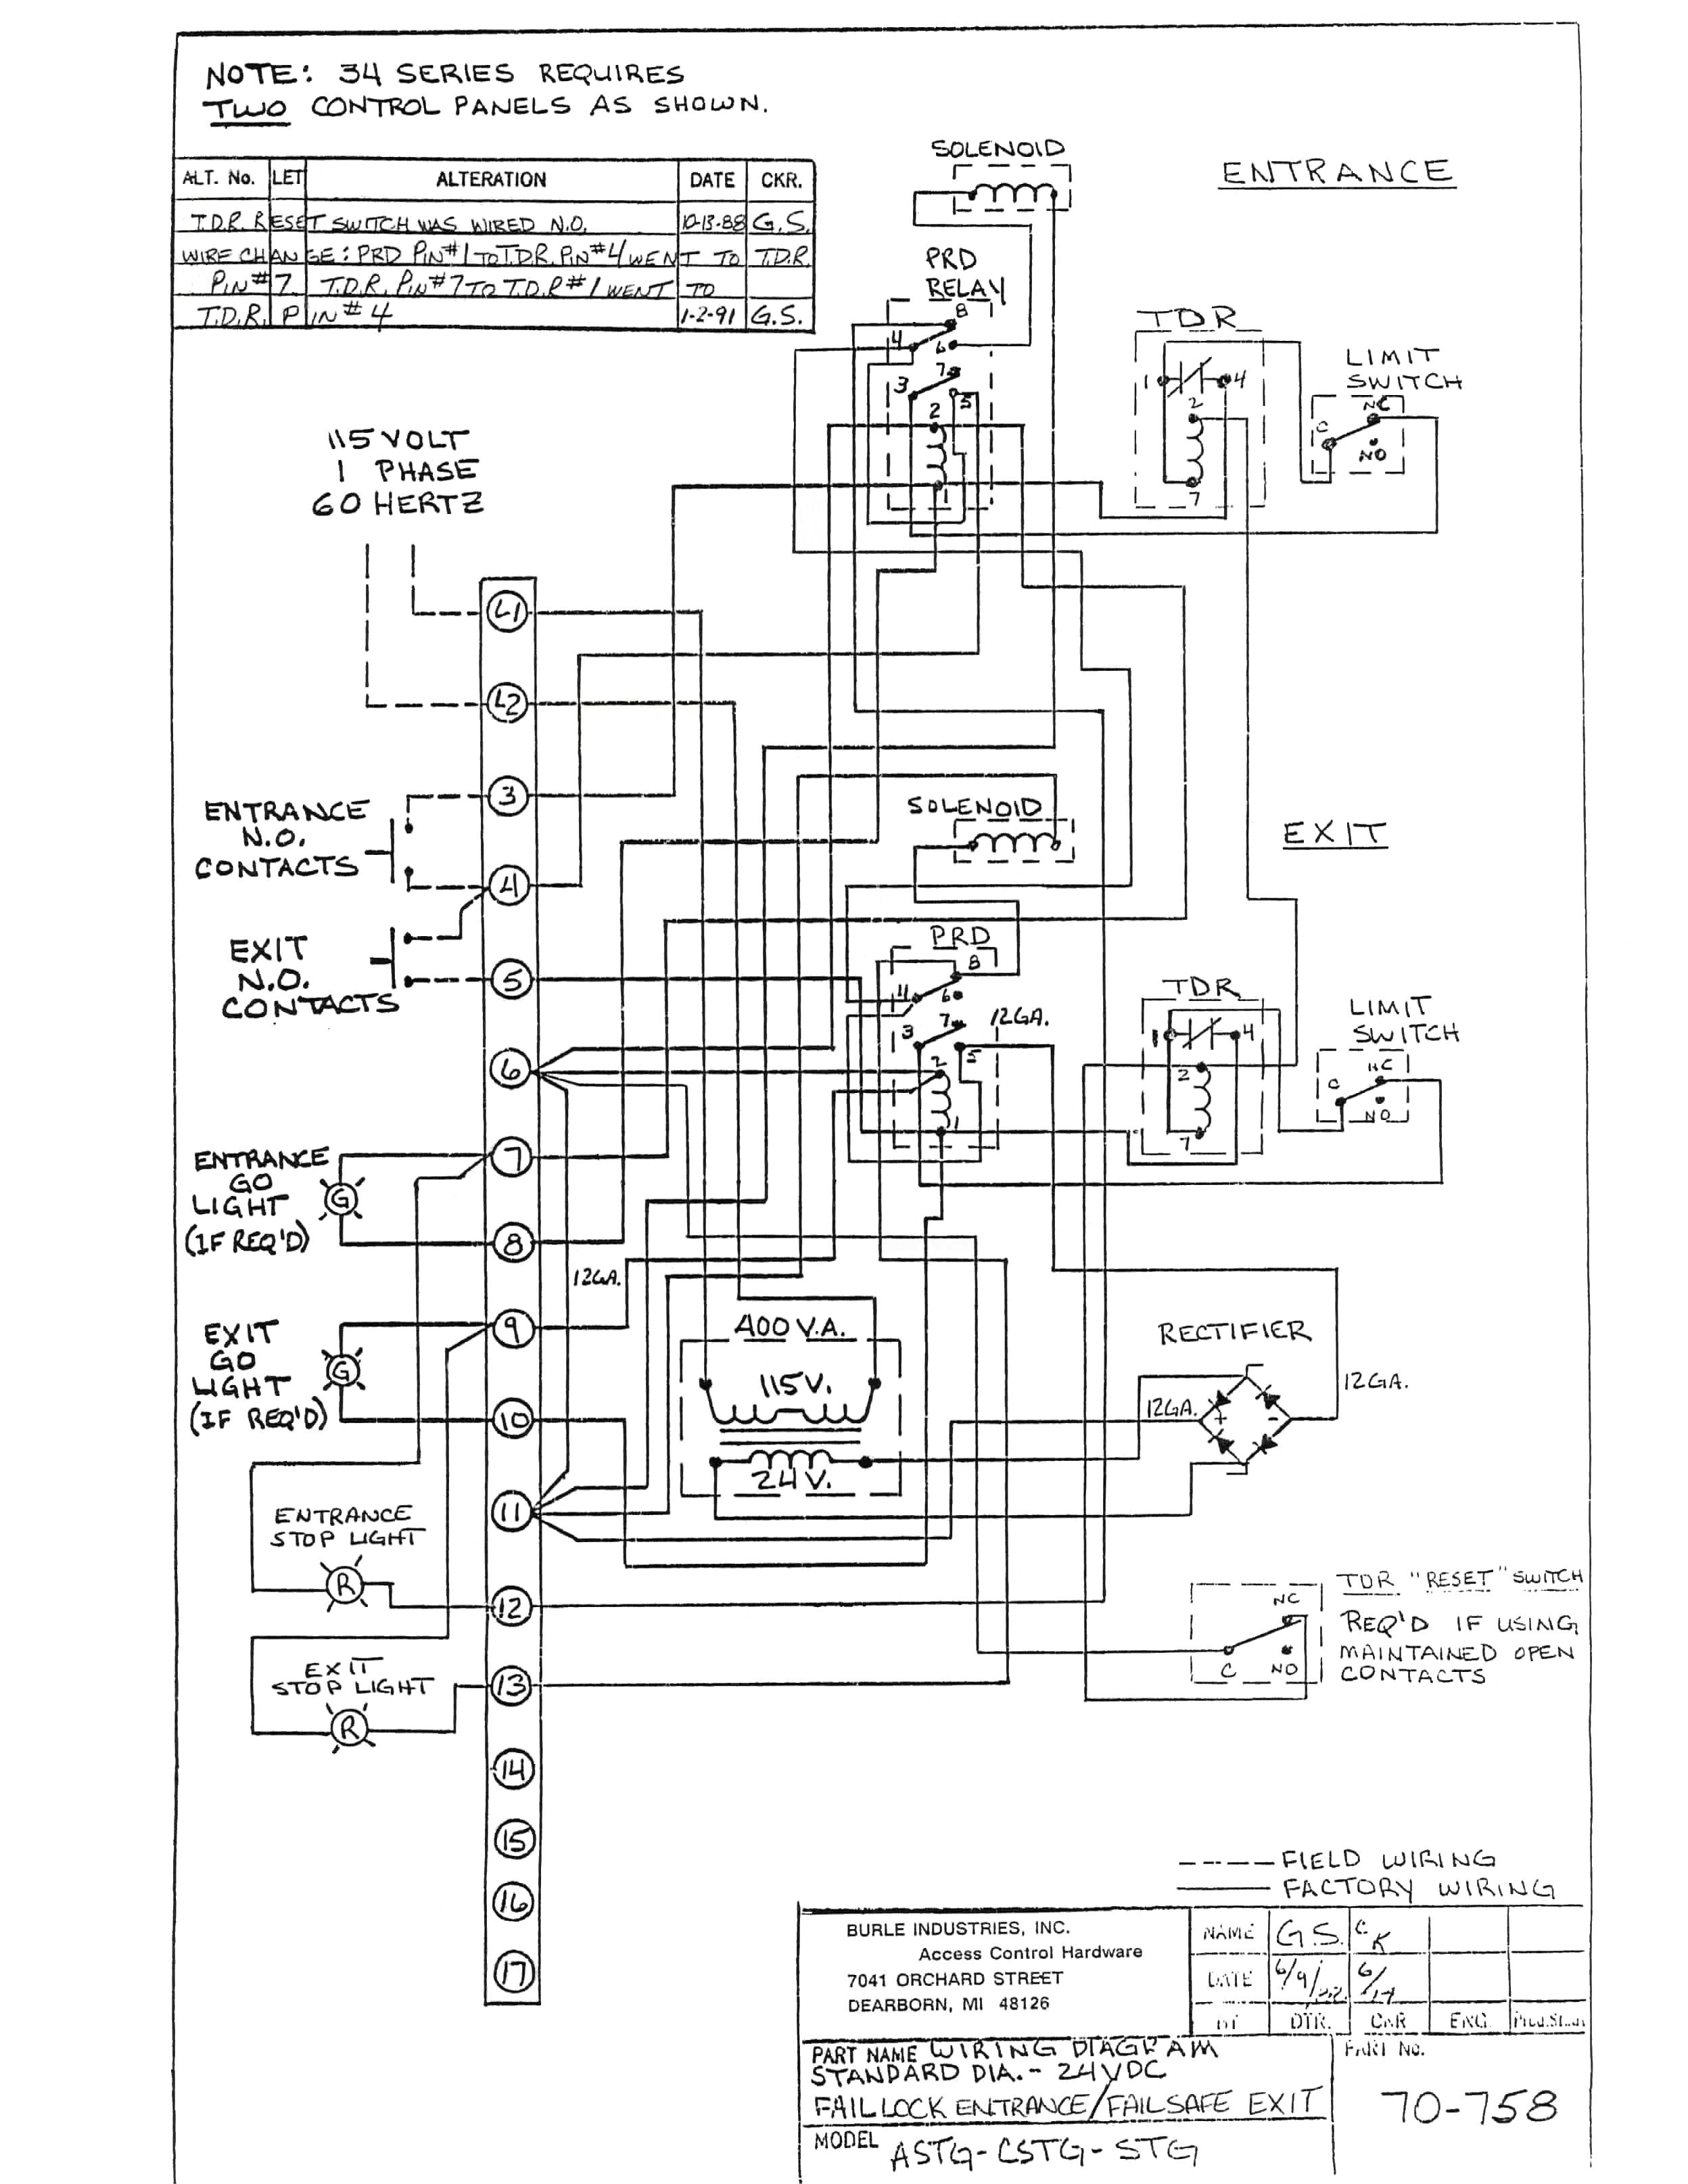 Trane Xr90 Wiring Diagram : 25 Wiring Diagram Images